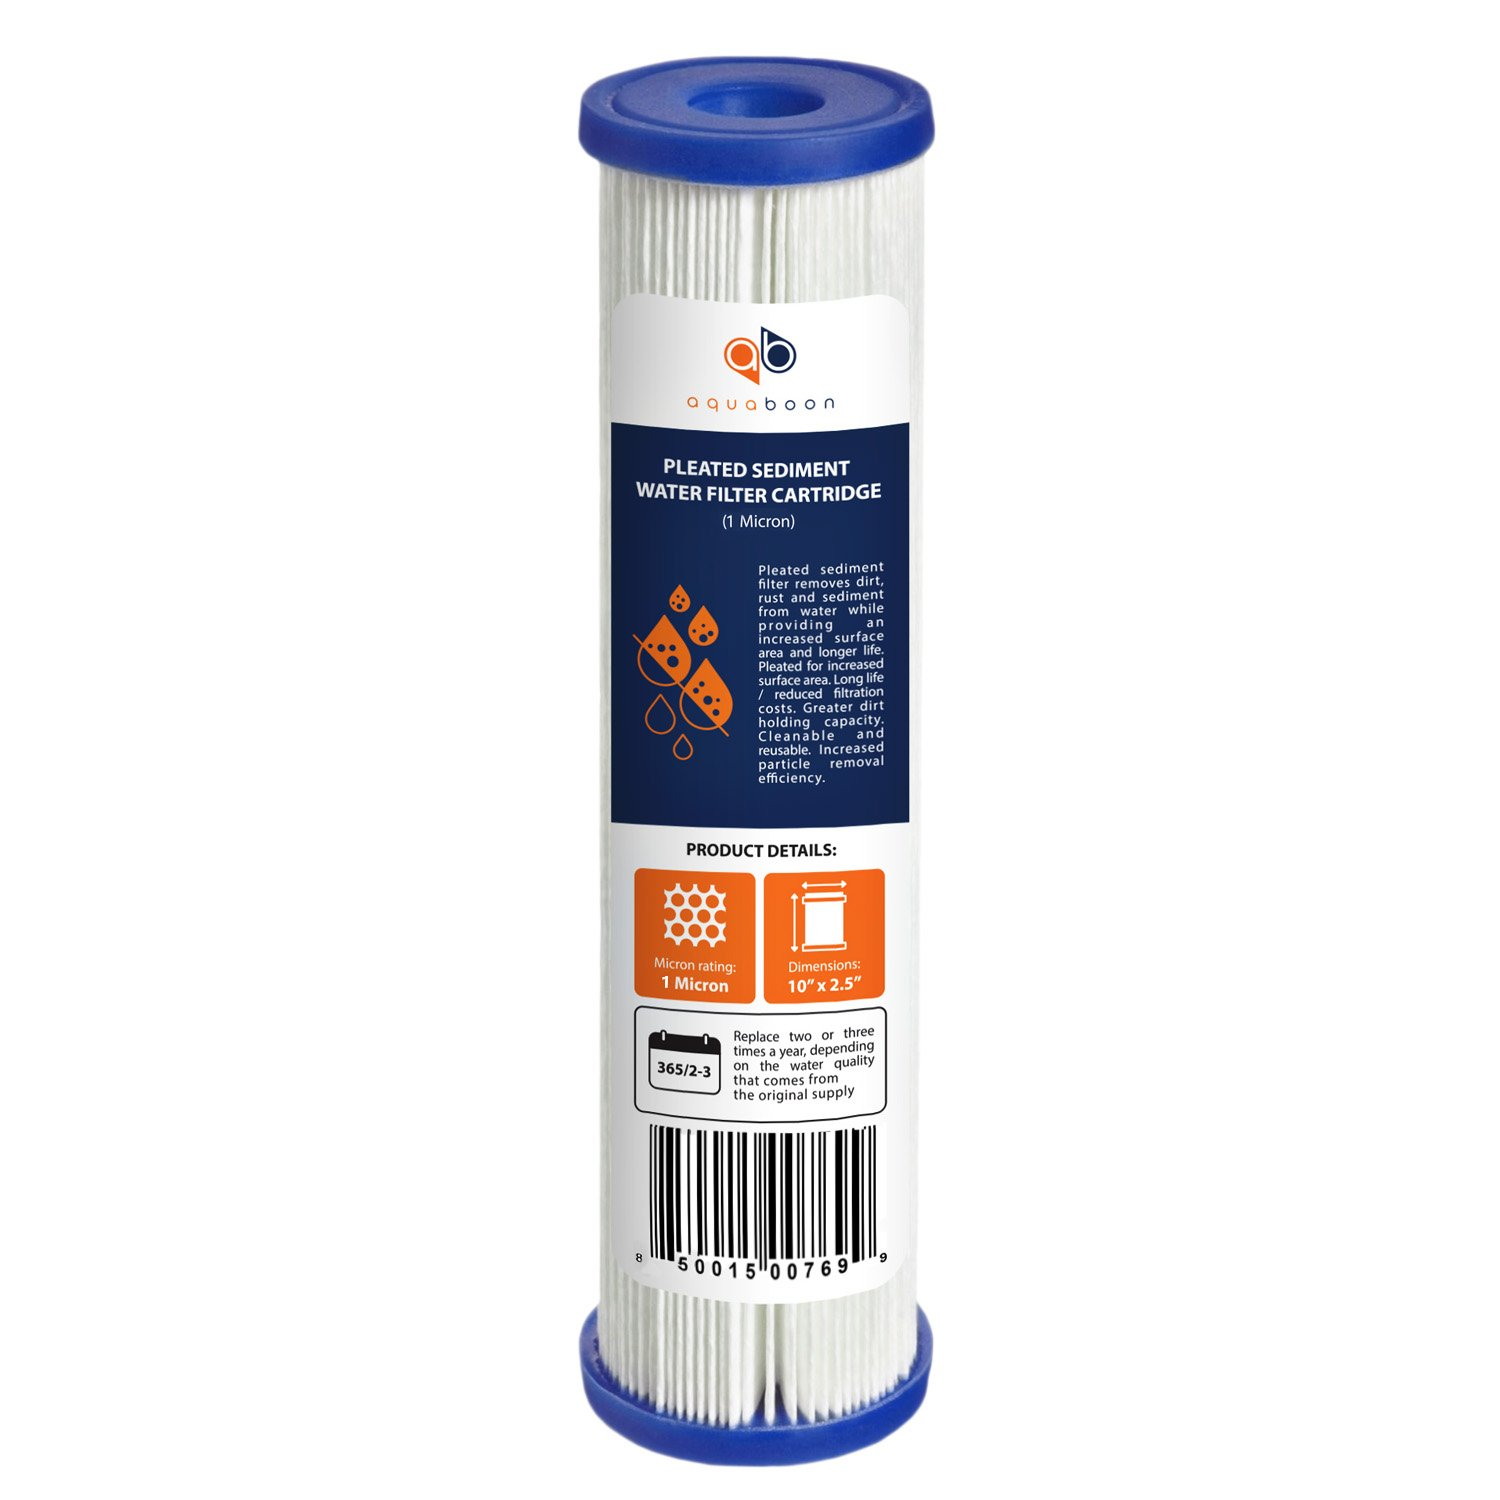 """Aquaboon 1 Micron 10"""" x 2.5"""" Pleated Sediment Water Filter Cartridge   Universal Replacement for Any 10 inch RO Unit   Compatible with R50, 801-50, WFPFC3002, WB-50W, SPC-25-1050, WHKF-WHPL, 1-Pack"""